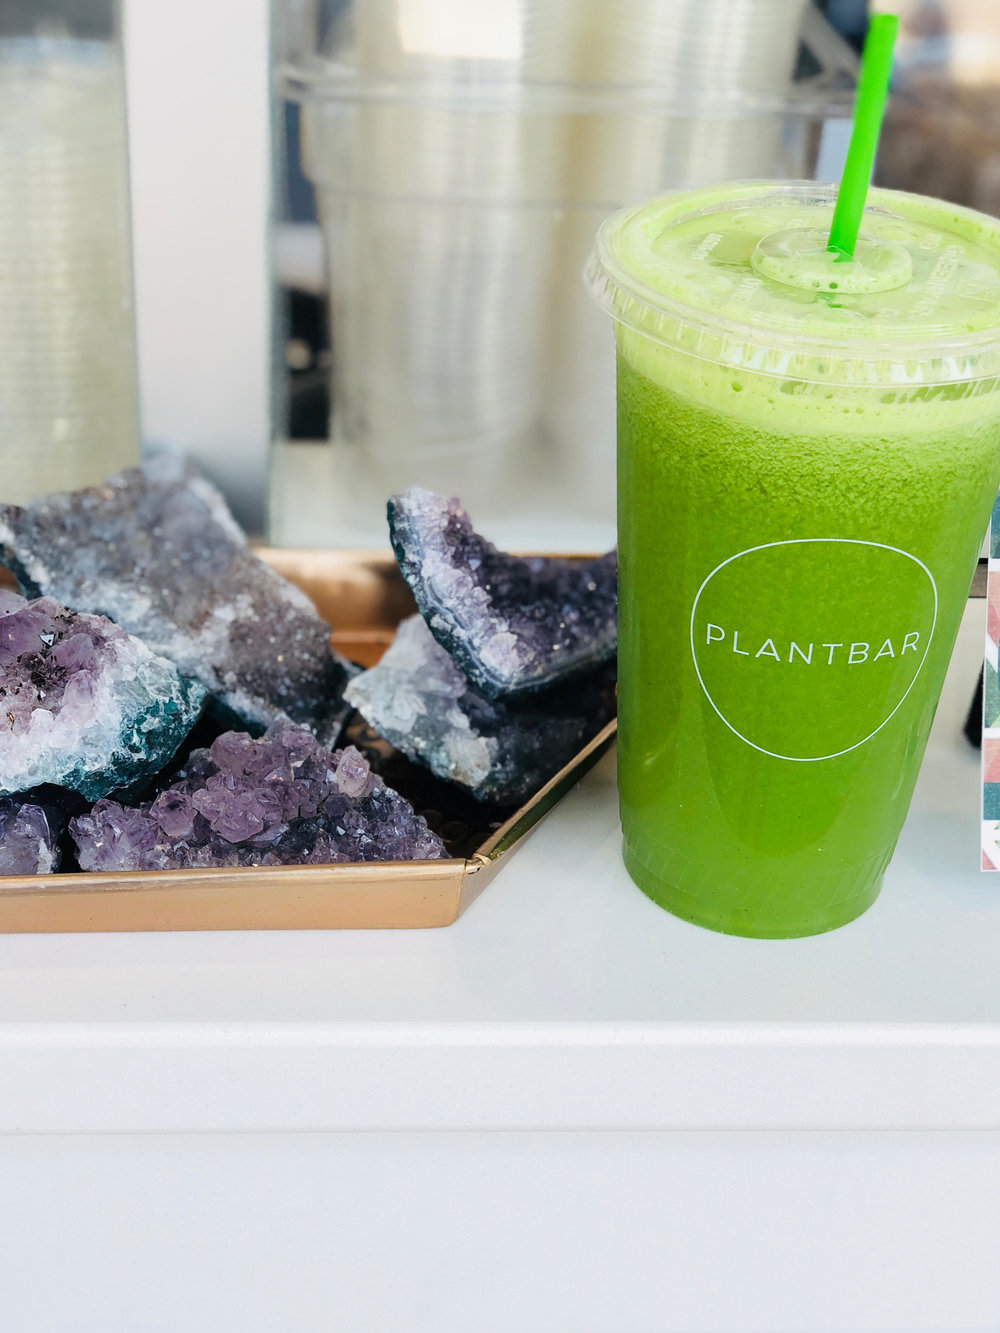 Plantbar- I got the daily greens juice and added celery juice!